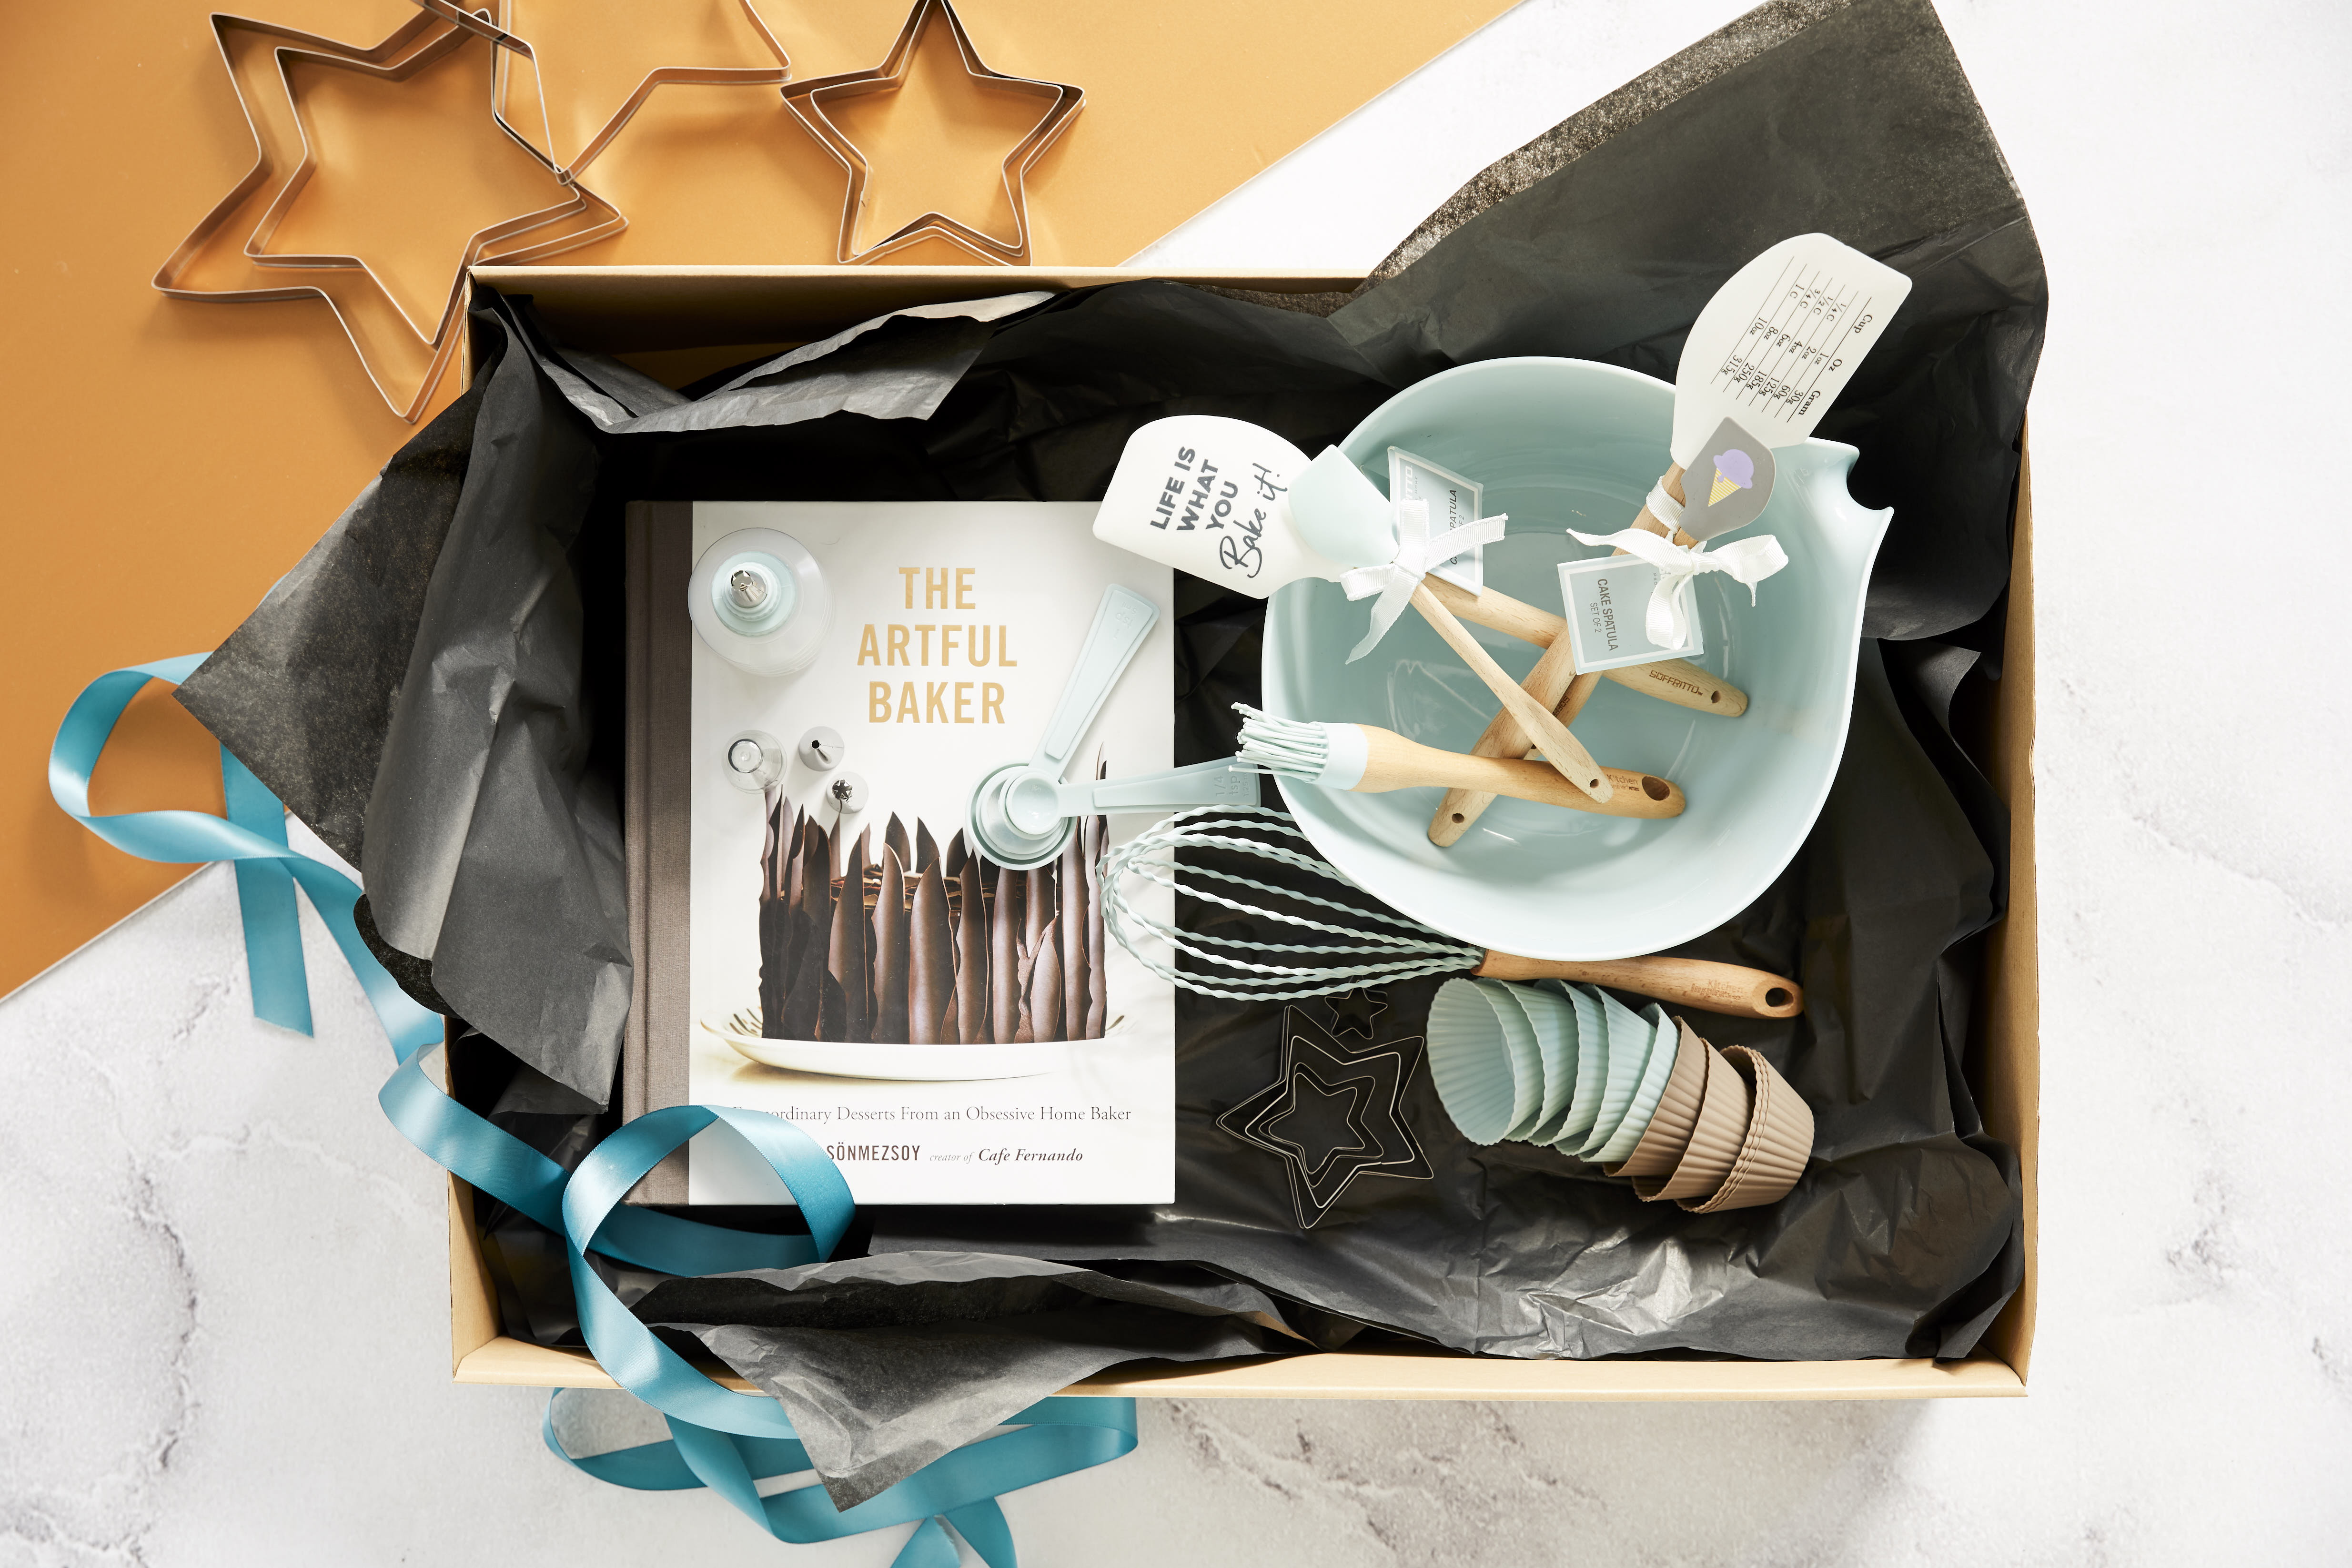 PERFECT FOODIE GIFTS